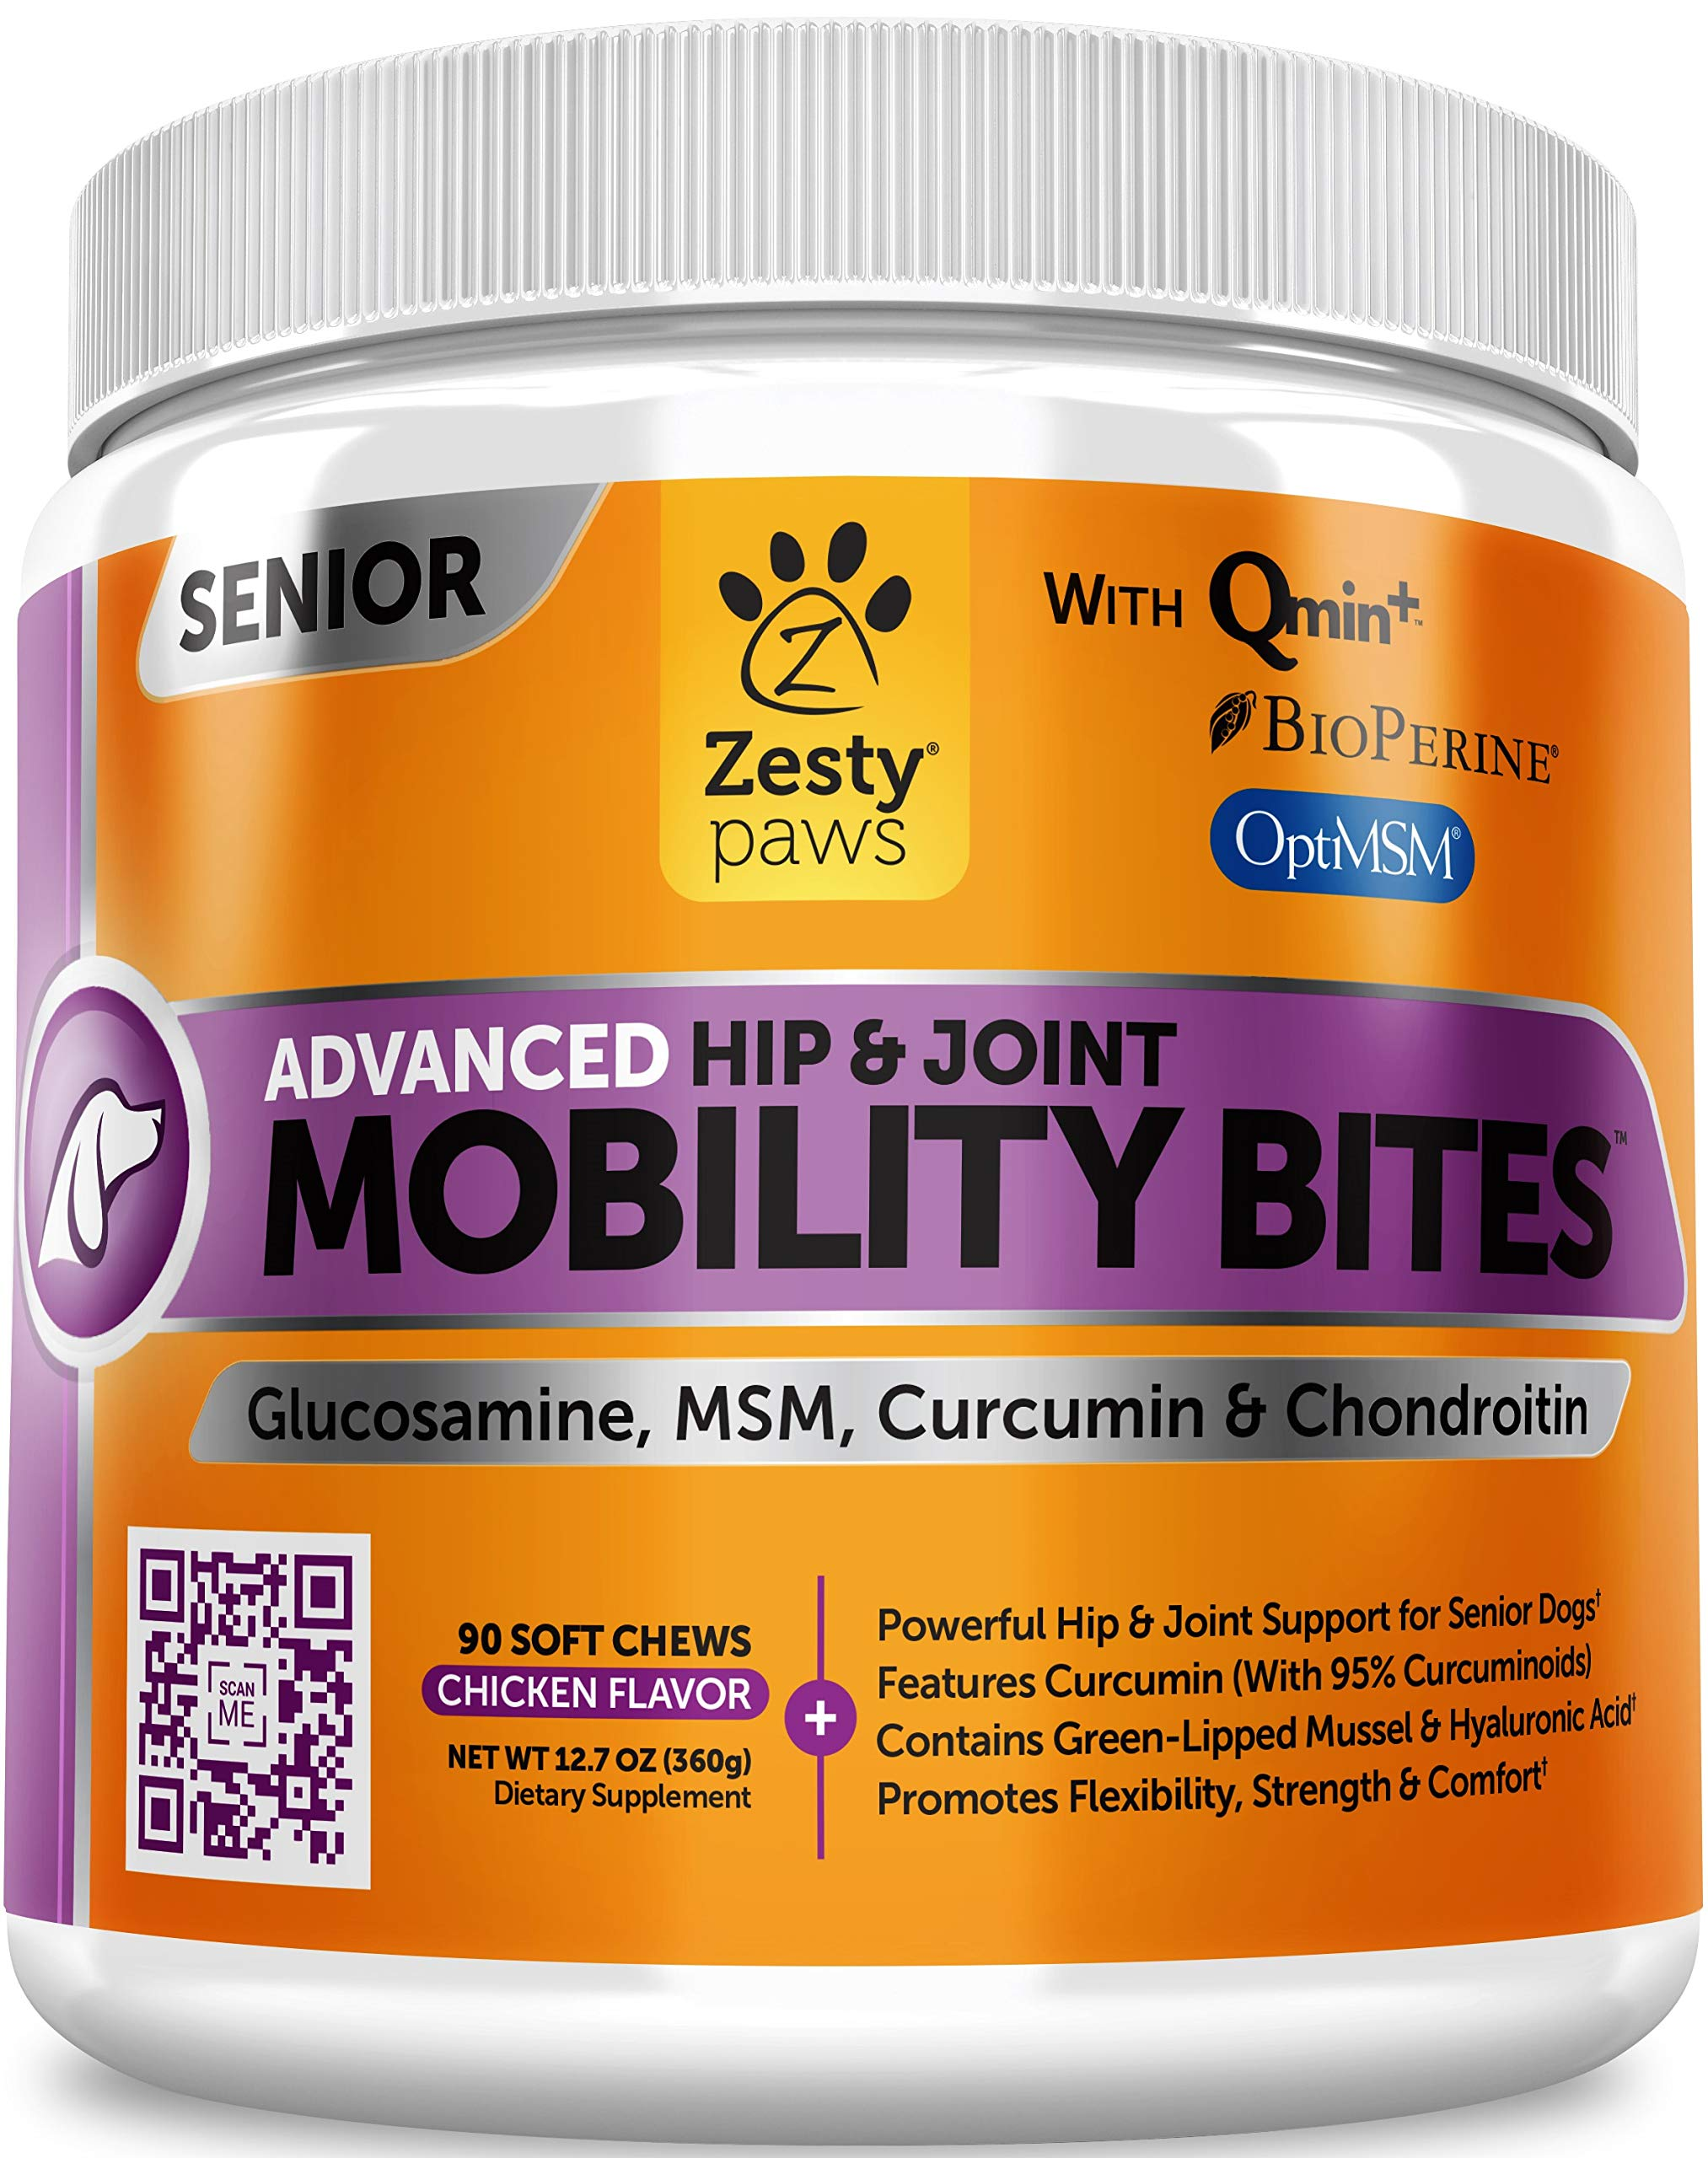 Senior Advanced Glucosamine for Dogs - For Hip & Joint Arthritis Pain Relief - Chondroitin, Turmeric Curcumin & MSM - Mobility Supplement with Green Lipped Mussel & Hyaluronic Acid - 90 Chew Treats by Zesty Paws